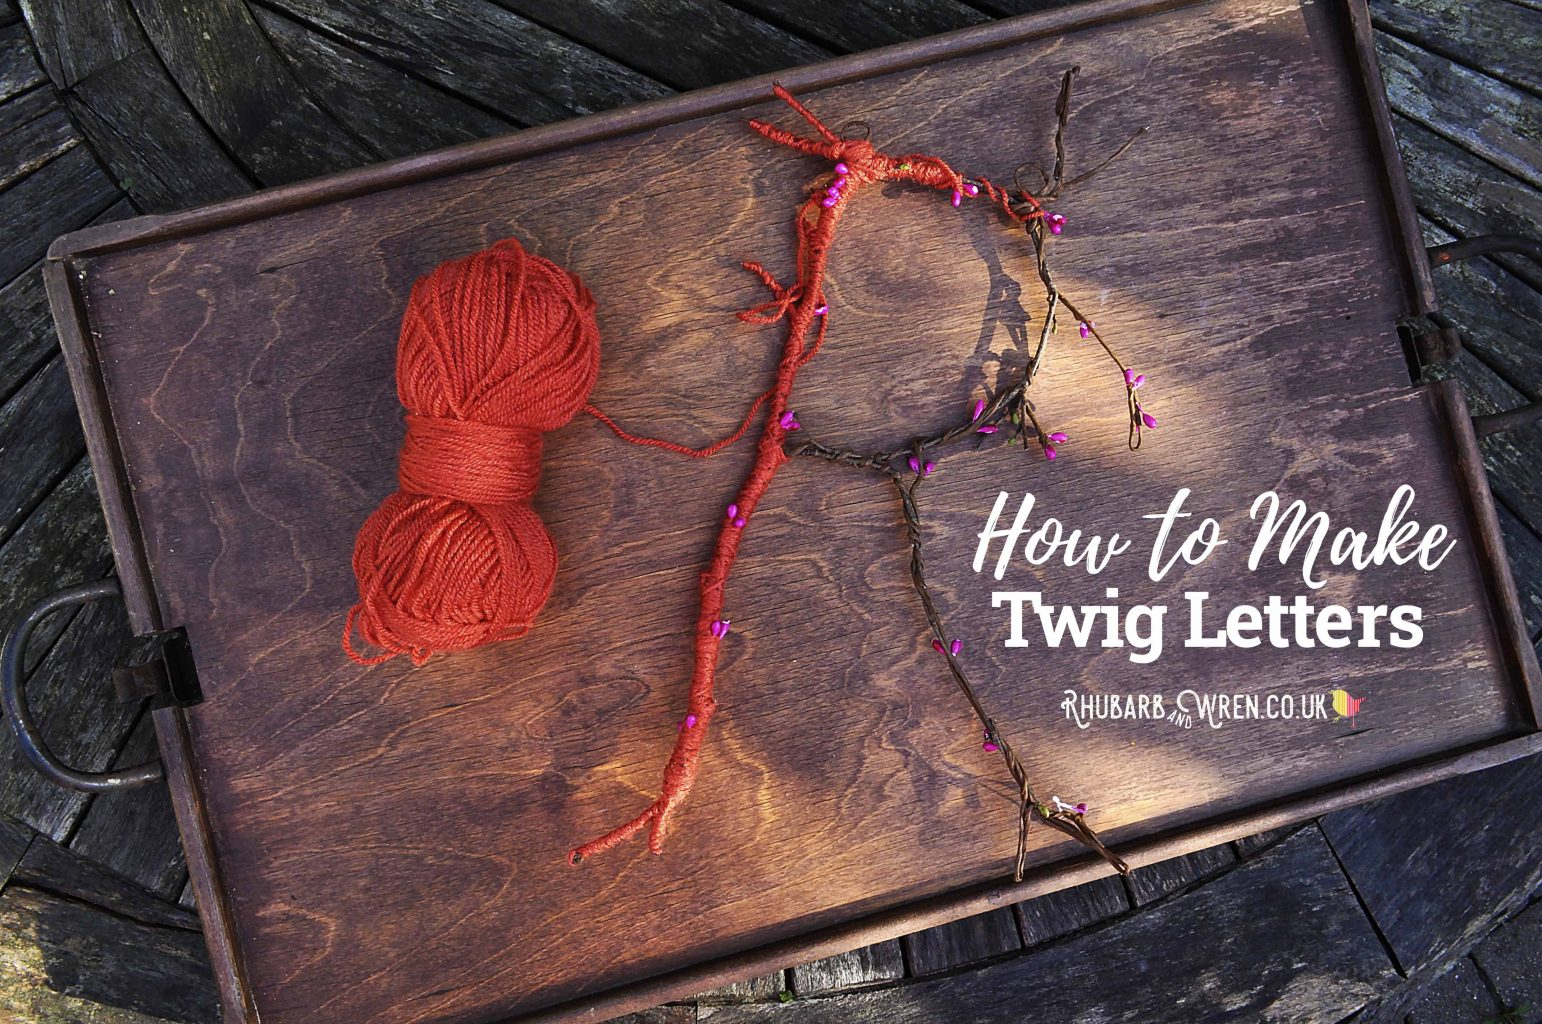 How to make twig letters by Rhubarb and Wren